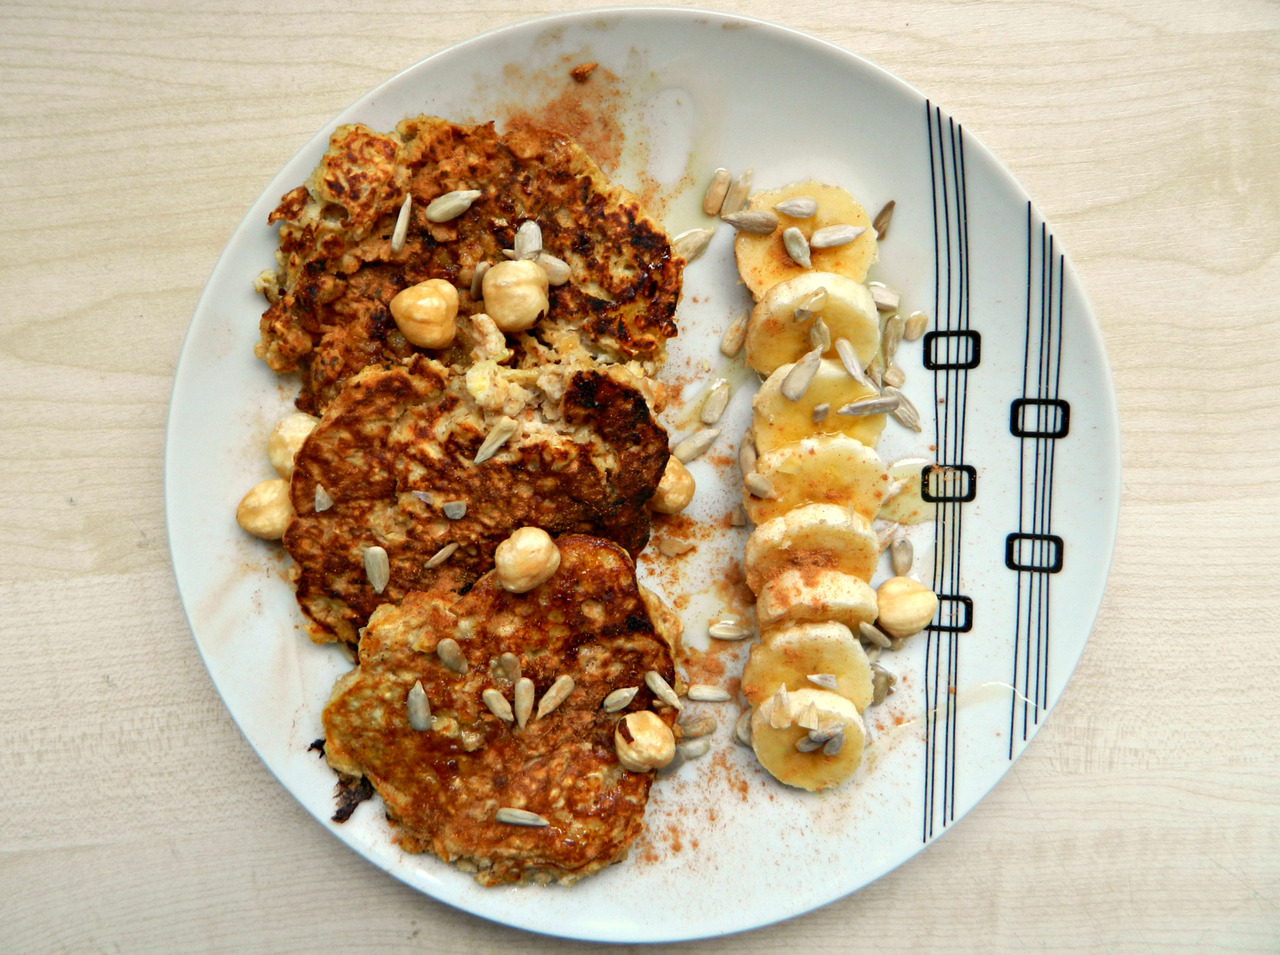 Banana-oat pancakes with cinnamon, hazelnuts, sunflower seeds, agave and the other half of the banana. I really fancied pancakes this morning but I didn't have any flour, so I made this mix up and they tasted wonderful! They're incredibly easy, cheap and it's likely you'll have these ingredients around the house anyway. Easily made gluten free! Ingredients/instructions -  1/2 cup oats, 1/2 a ripe banana (mashed), 1 egg, 2 or 3 tbsp soy yoghurt* and a few shakes of cinnamon. I simply mixed them all together, heated some coconut oil in a pan, poured the mix in to the pan in three sections and cooked away! Easy as pie. (or pancakes.) *I'm not sure if this is needed or not, I just added it to make the mix go further. Any yoghurt would work in place if you're good with dairy, or maybe a tiny dash of almond milk to thin it out, but not too much. If you do add too much milk, add some chias or flaxseed to thicken again. :)